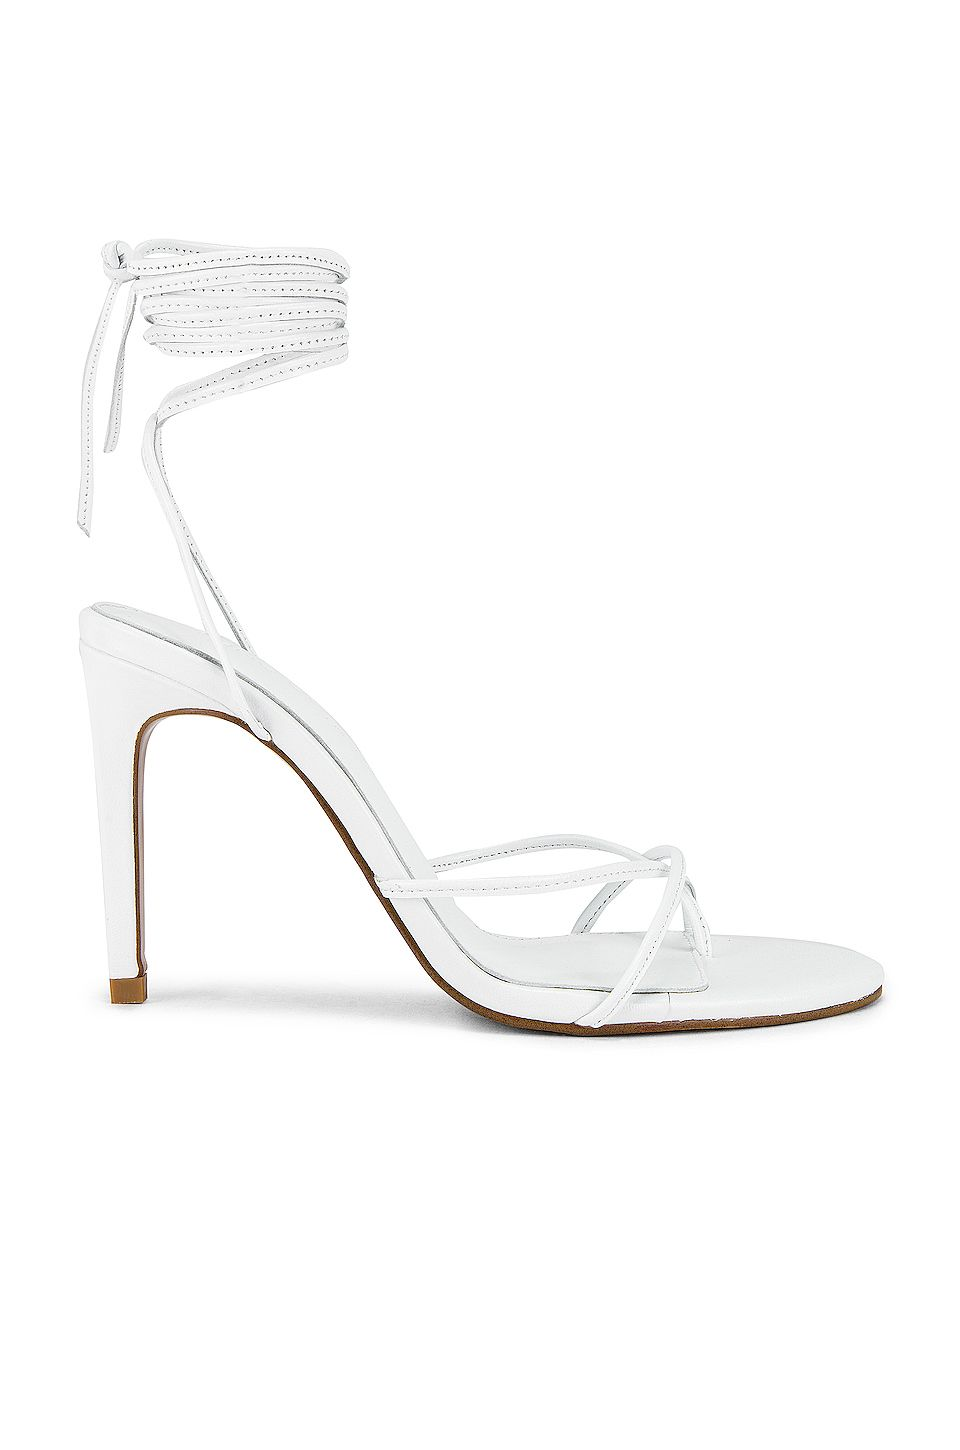 Nola Heel in White